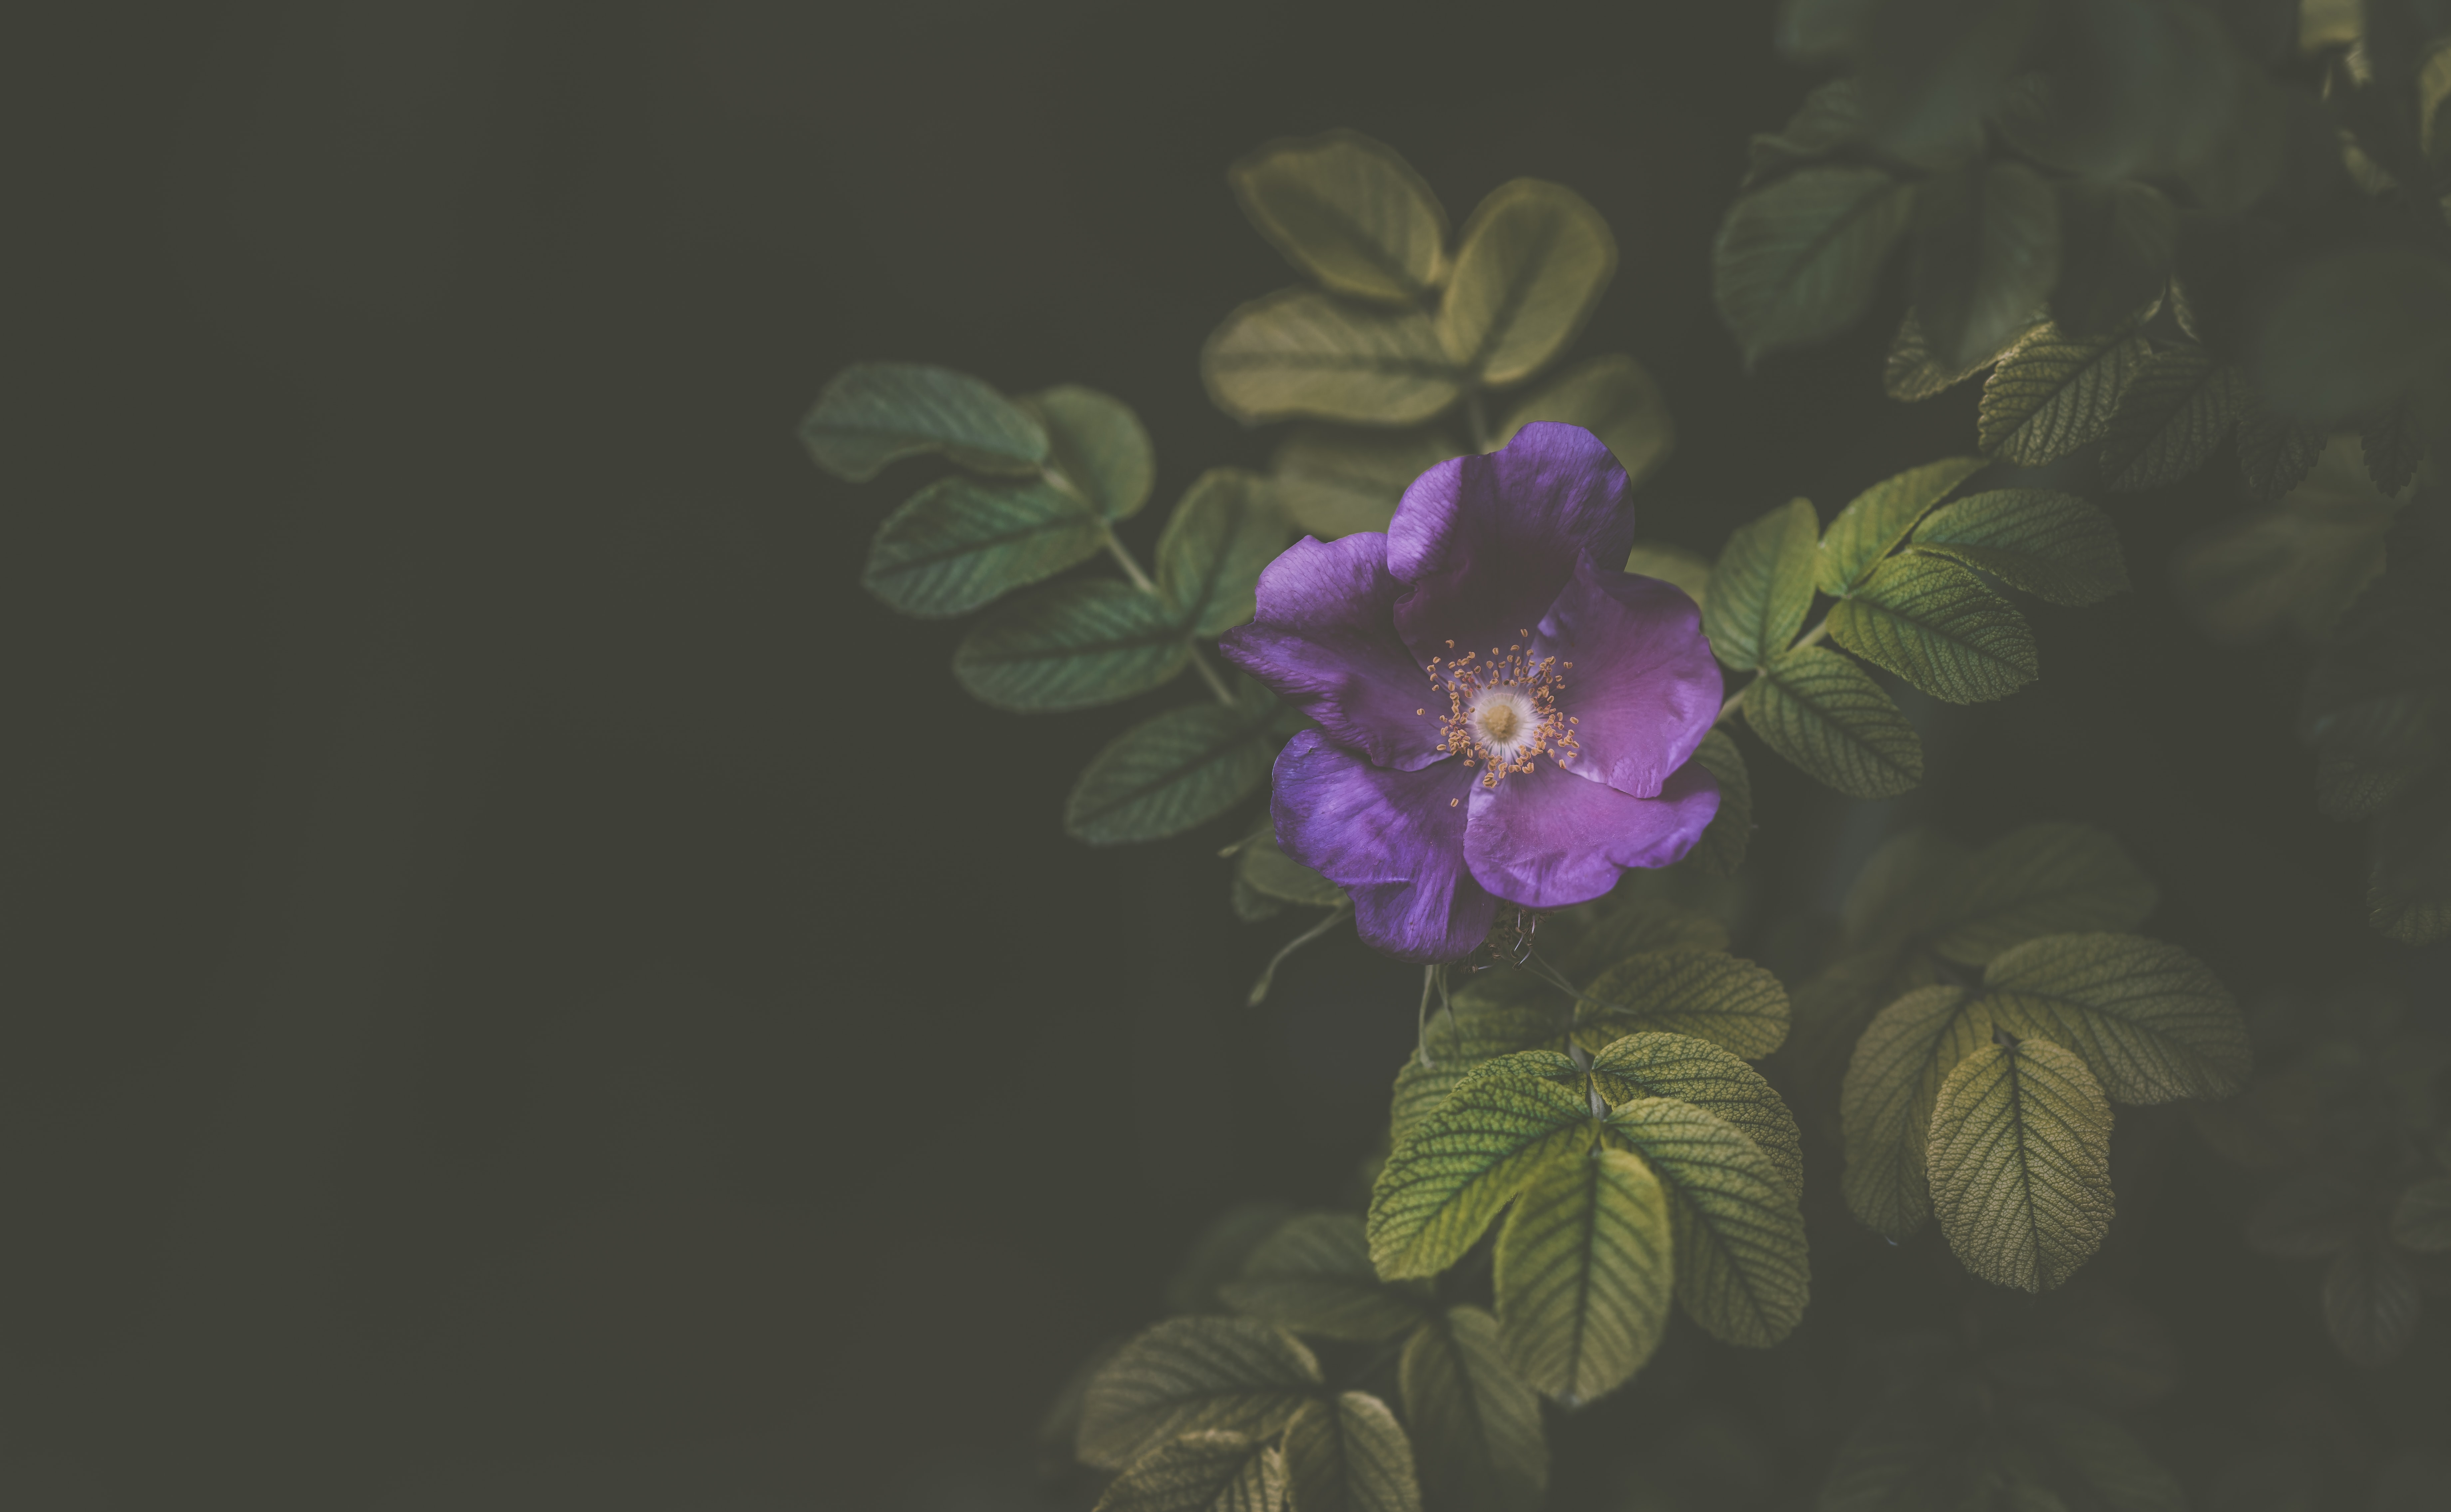 A purple flower and its green leaves against a dark background